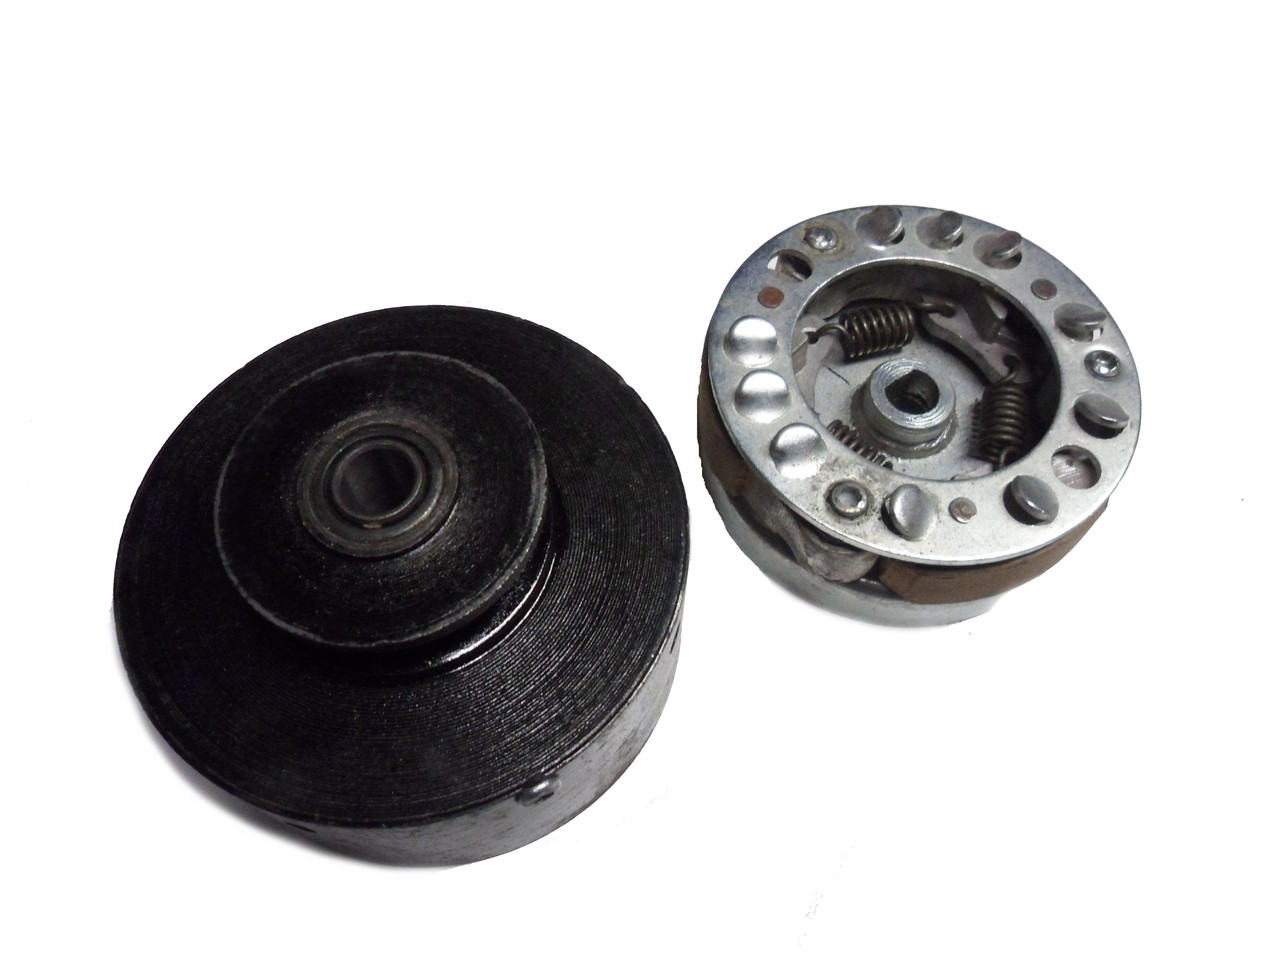 Original Kinetic TFR Moped Single Speed Clutch - 13227680